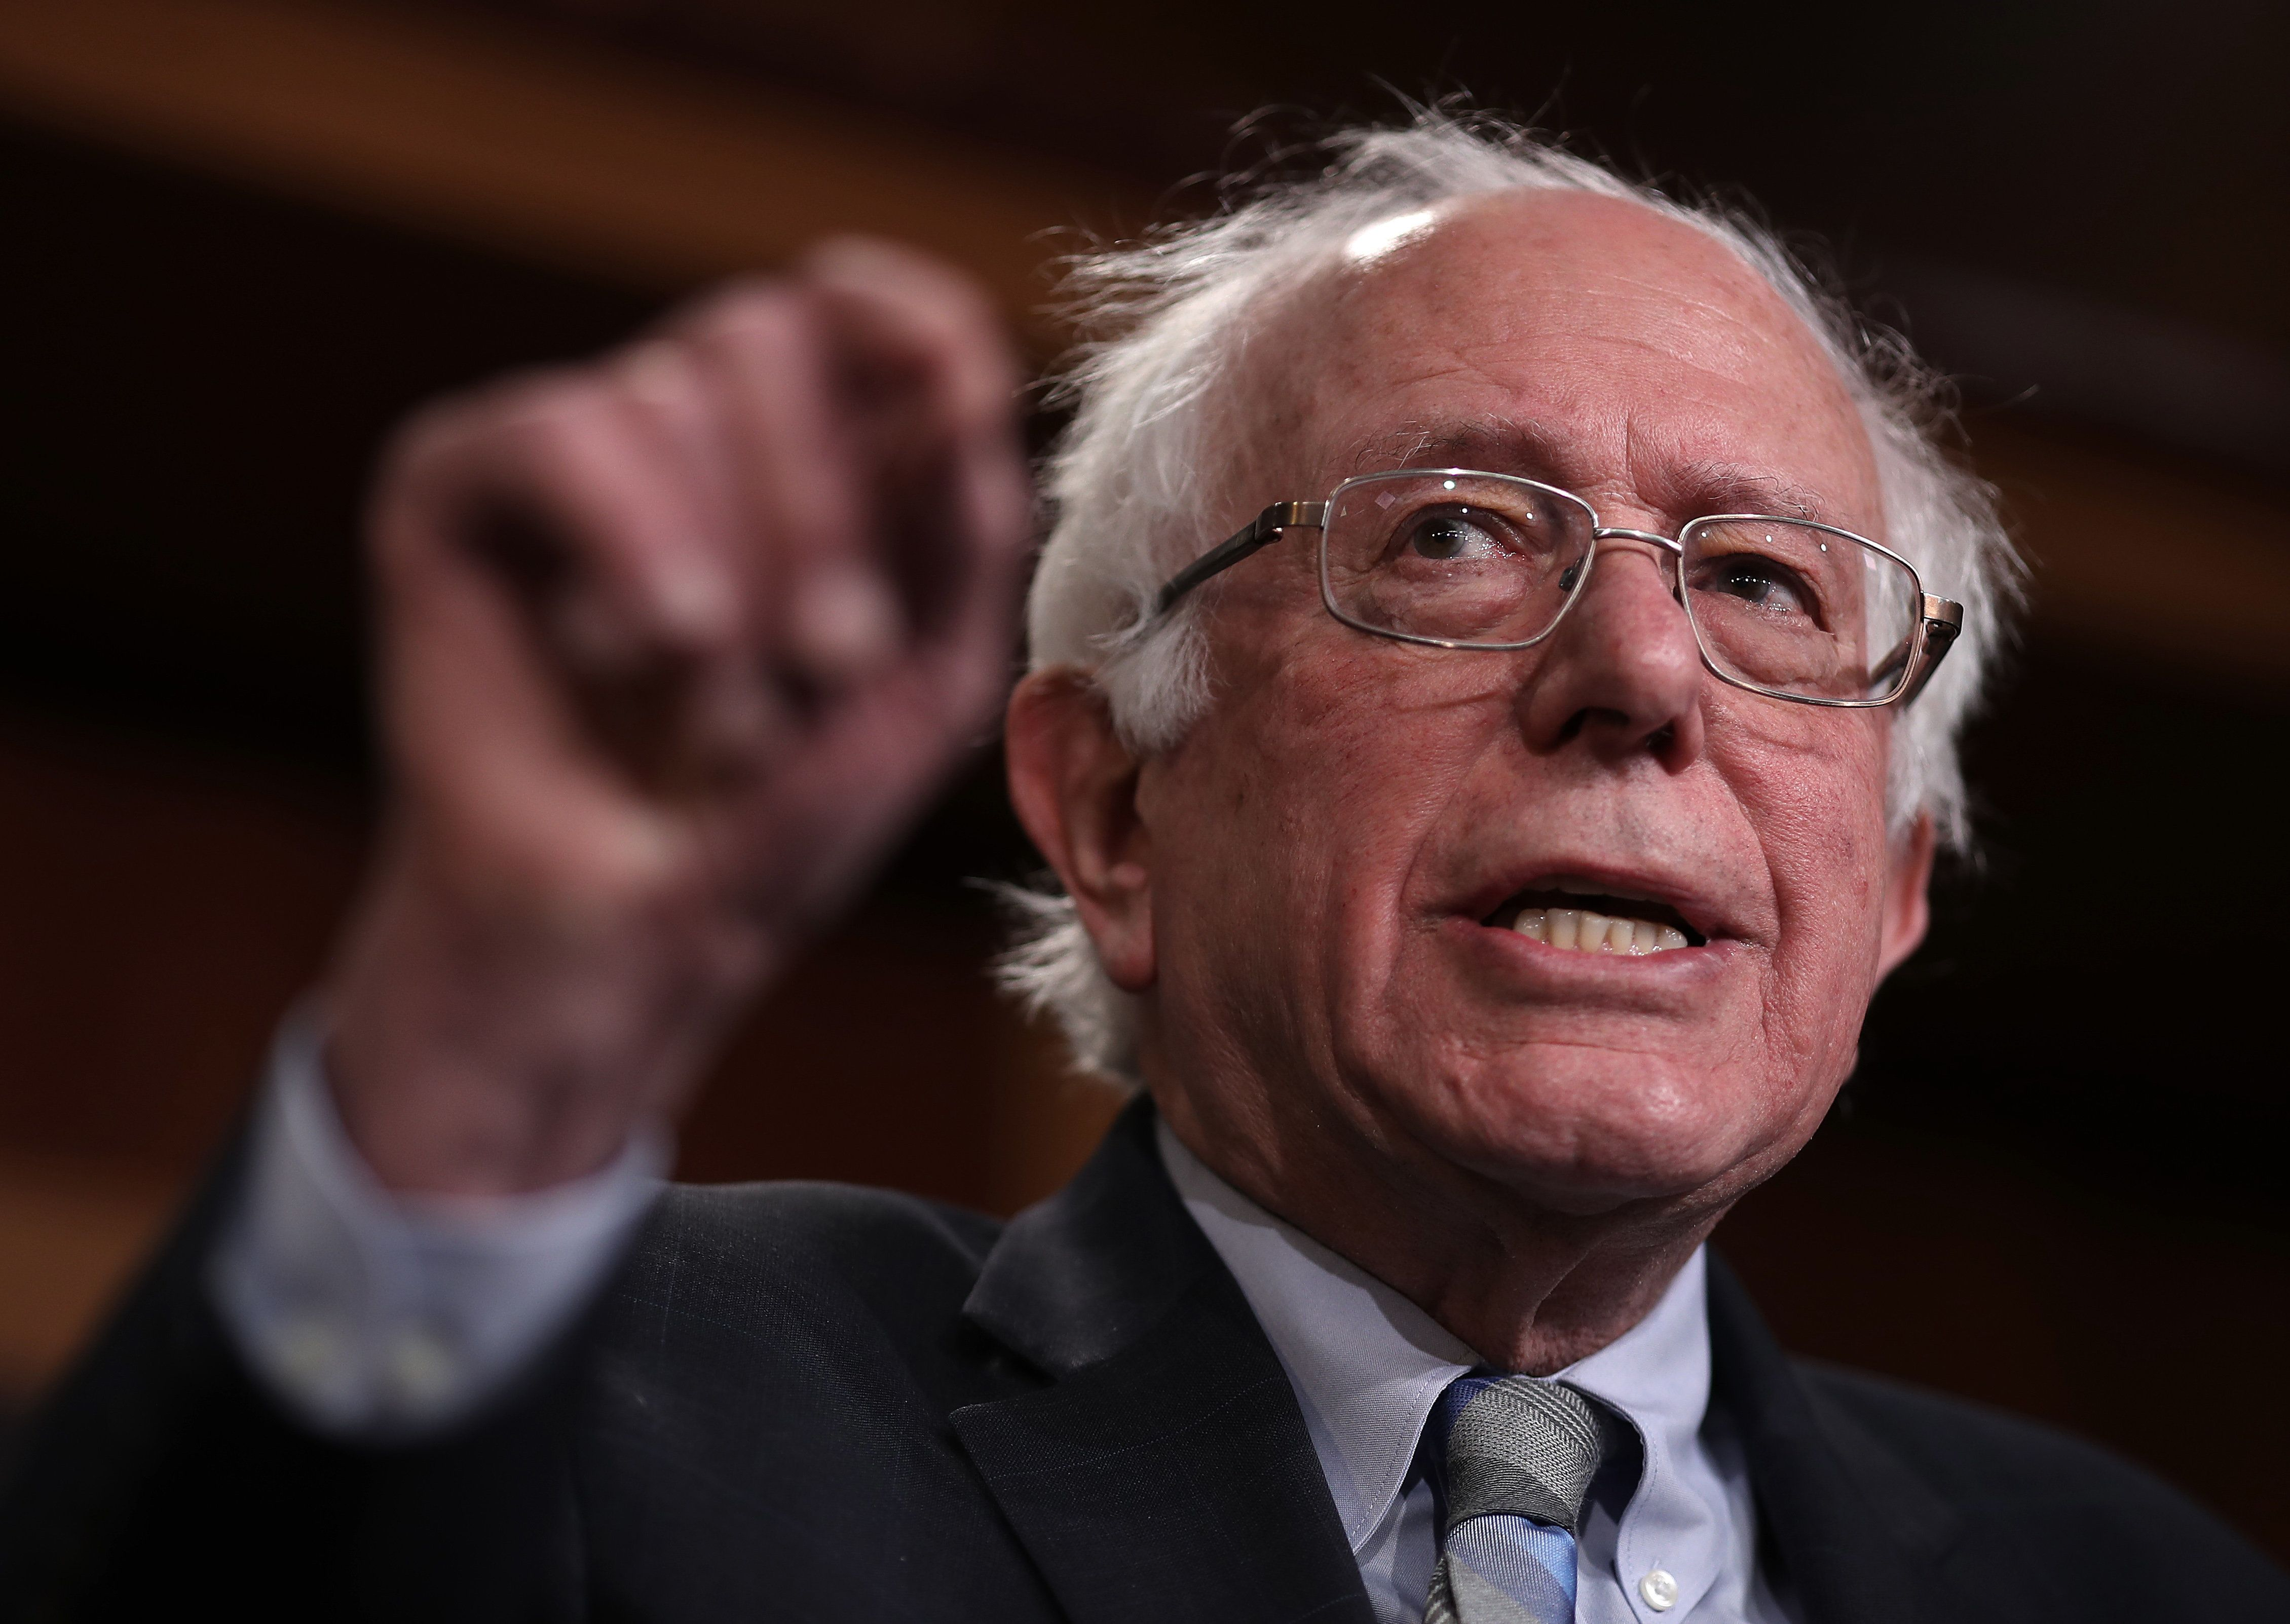 Bernie Sanders Uses Rebuttal To Fact-Check Trump's State Of The Union